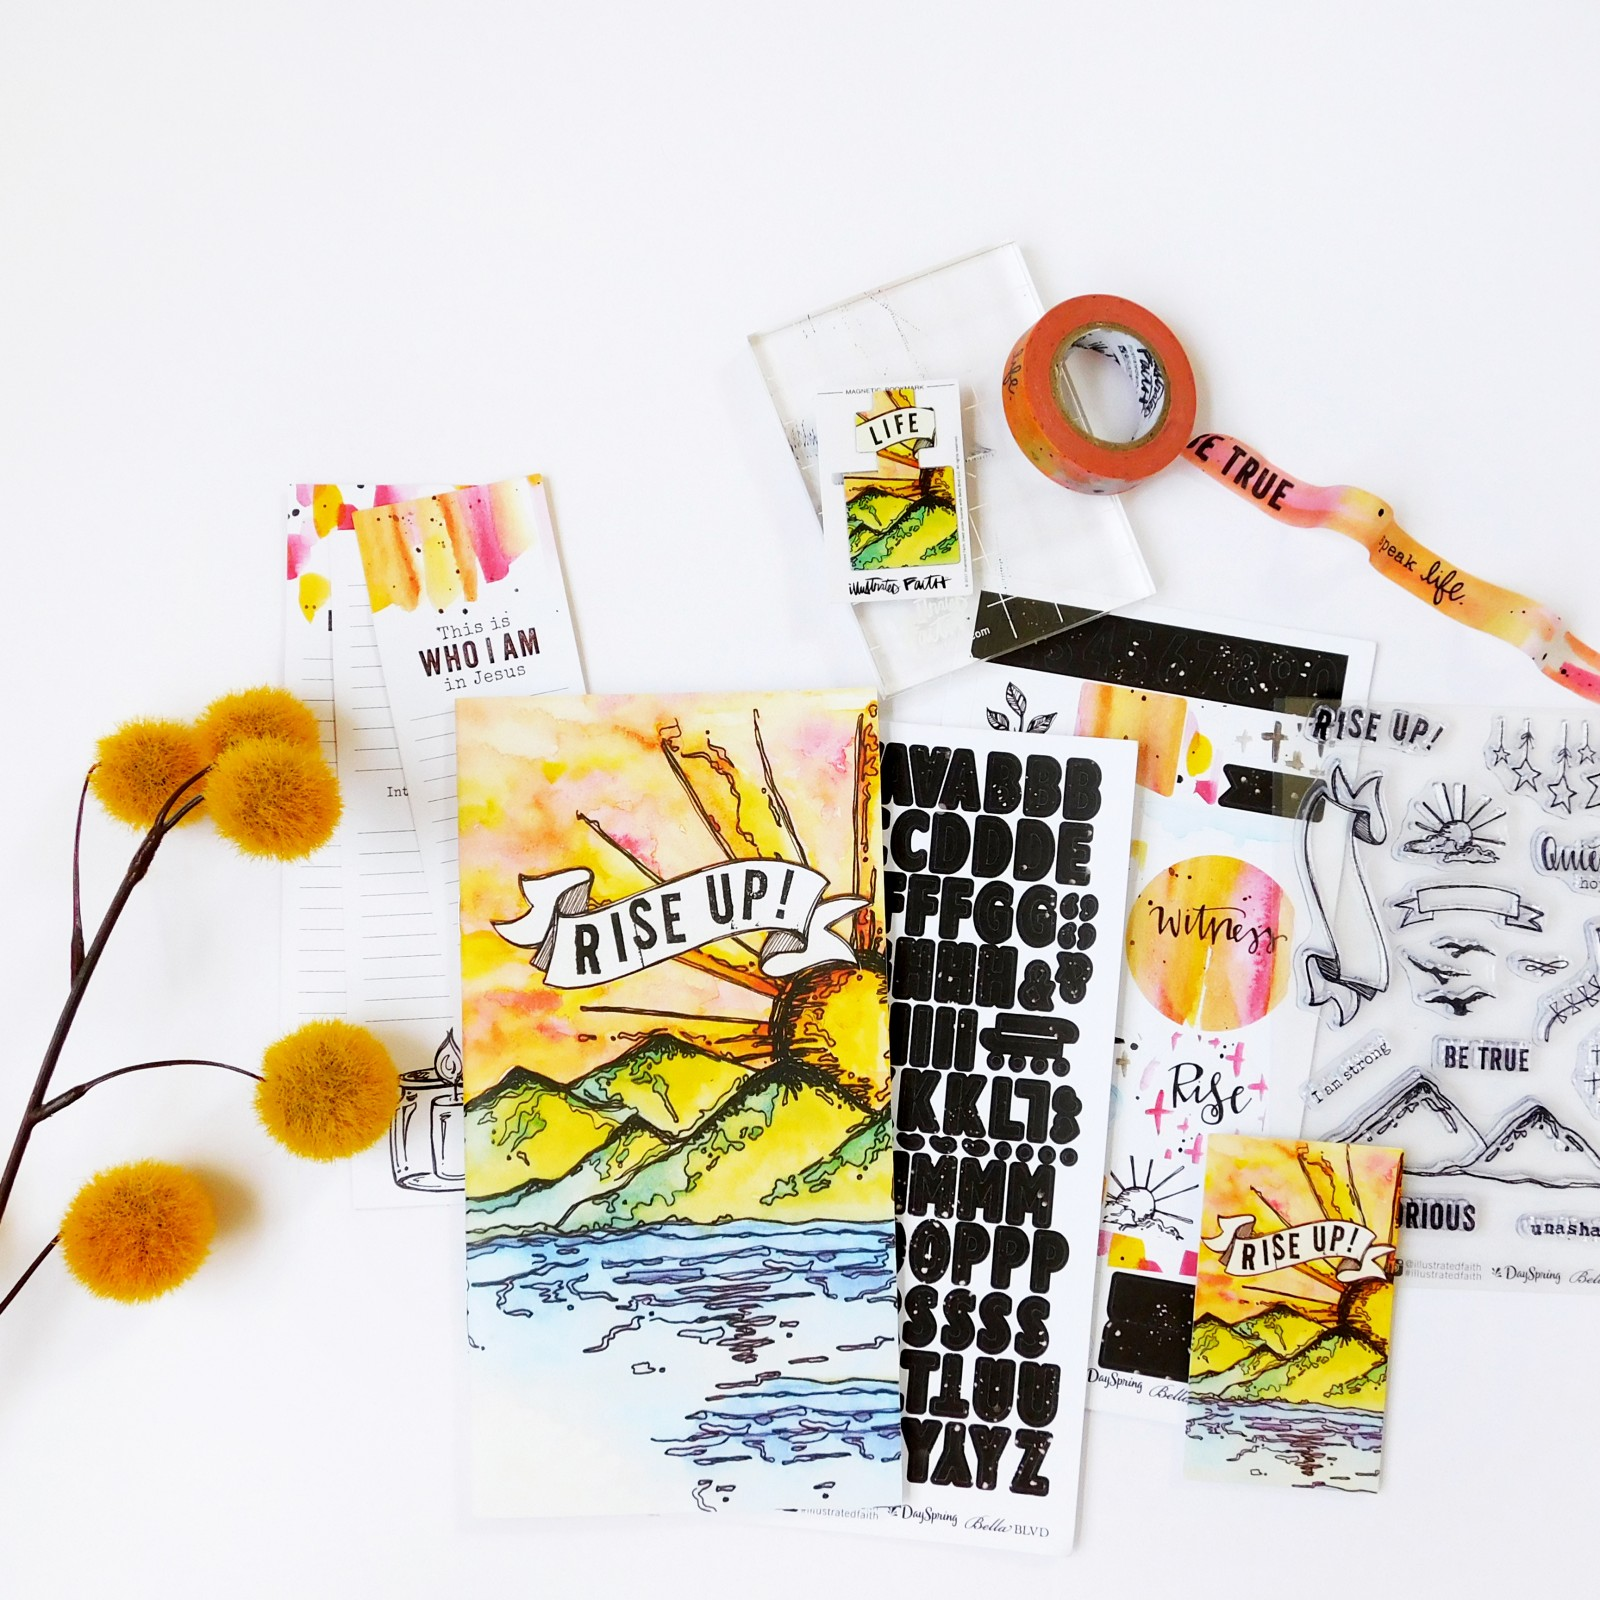 Let's Rise Up! New Illustrated Faith Bible Journaling Kit! Contents Inside